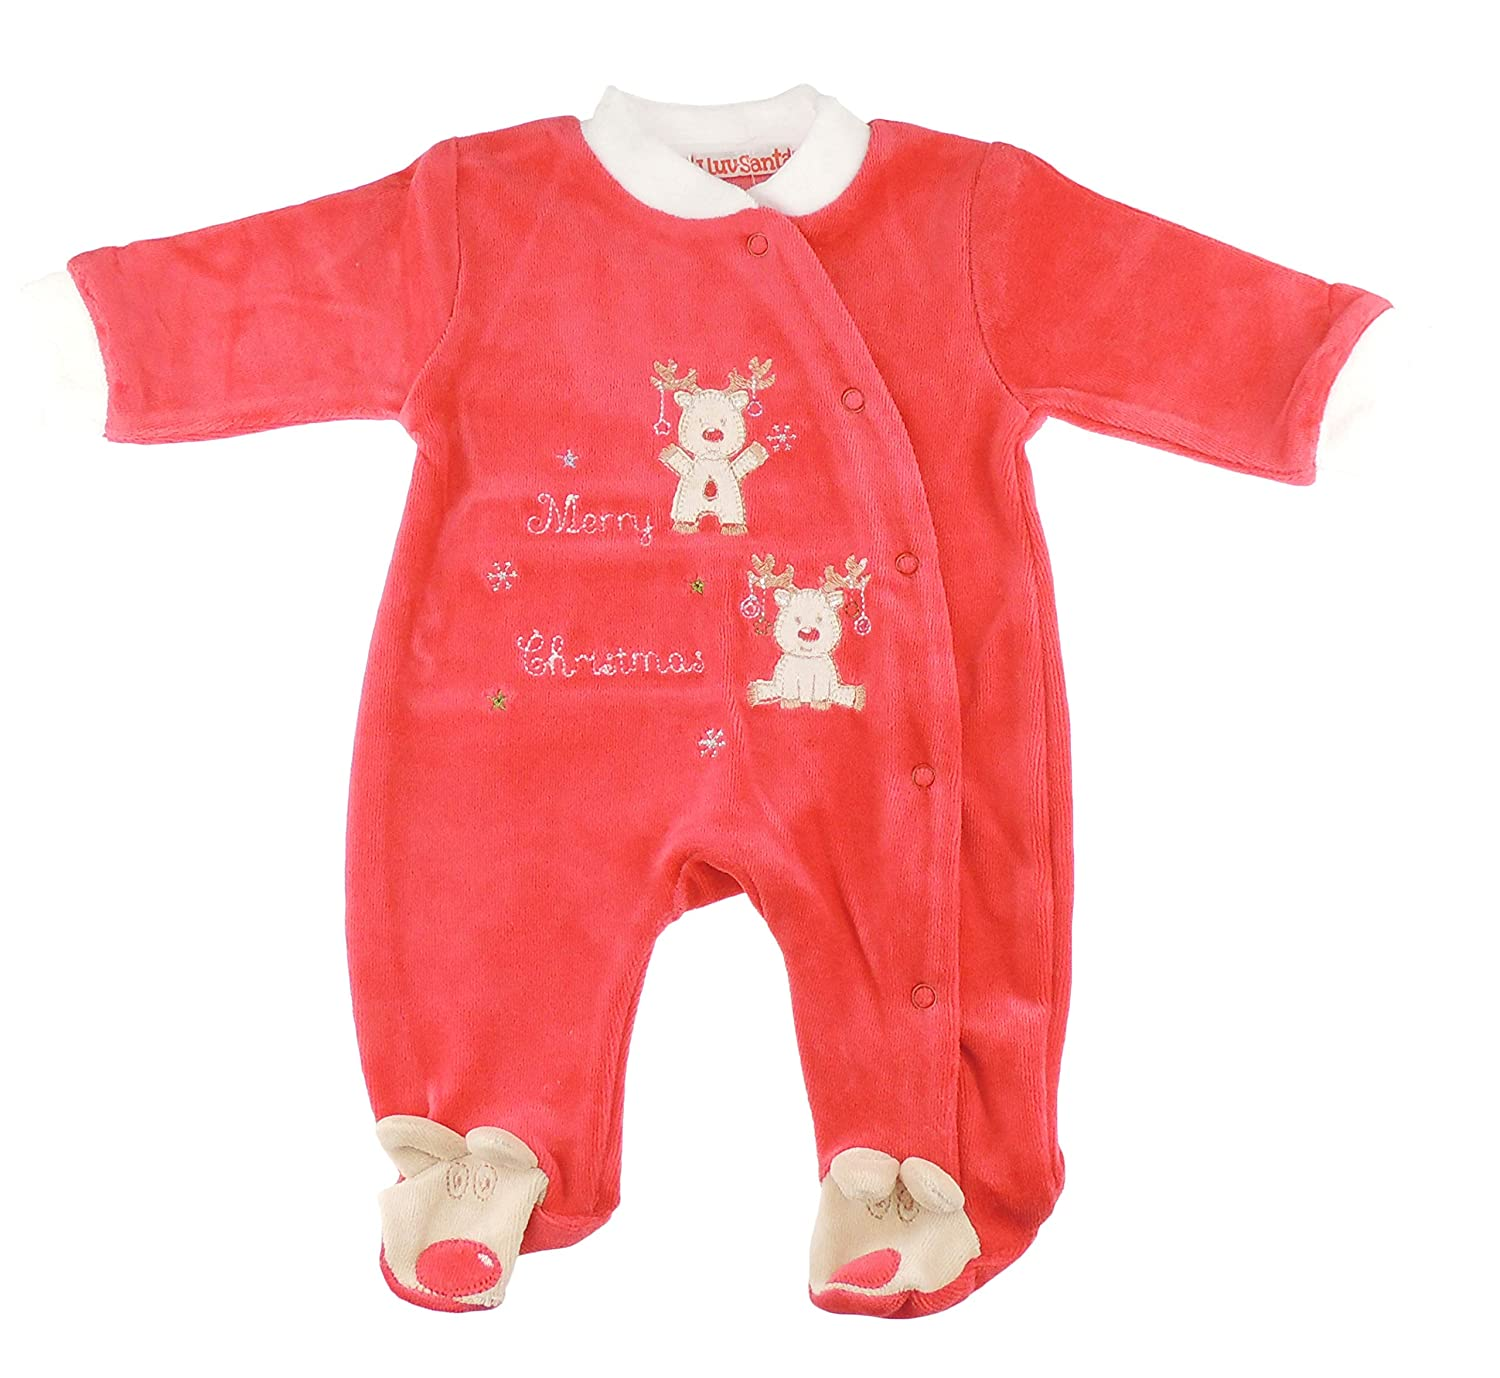 Festive Christmas Winter Baby Girls Boys Velour Romper Sleeper All in One Red Little Reindeers Outfit (3-6 Months)